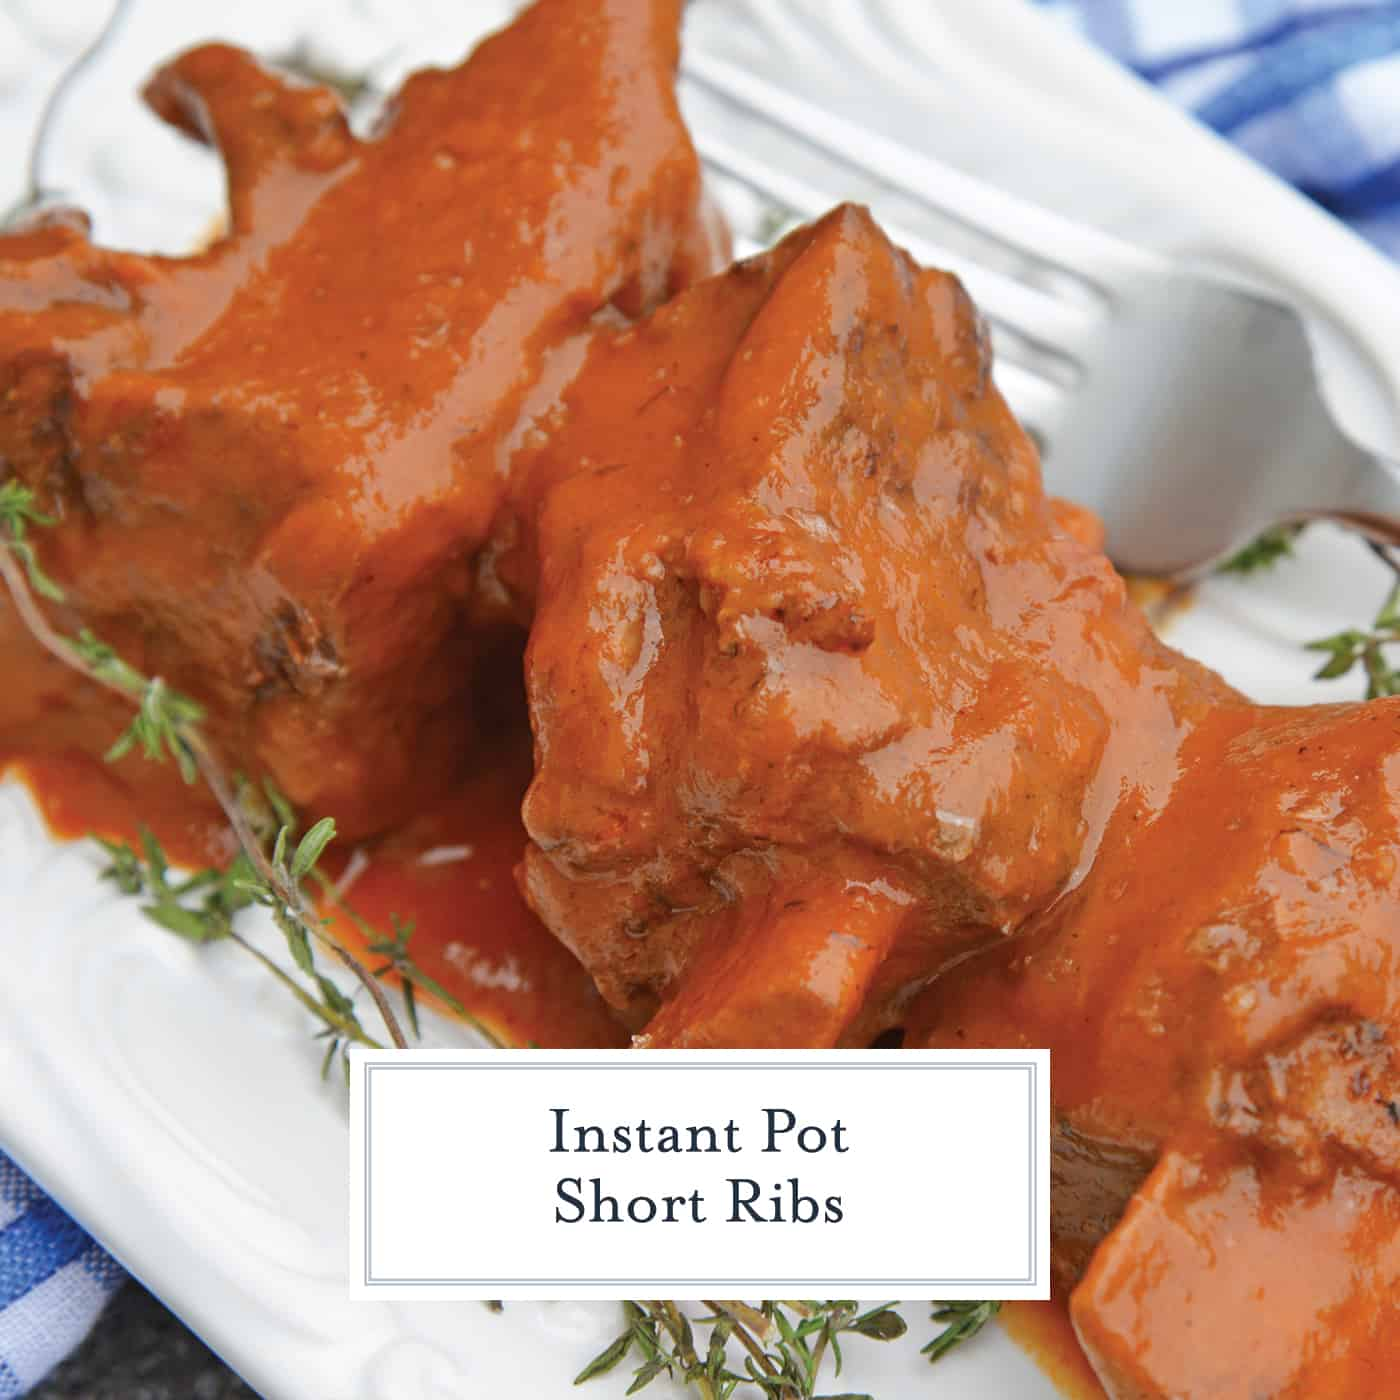 Instant Pot Short Ribs are a fast and flavorful way to make your favorite braised short ribs without all the hard work and hours of cooking. #instantpotshortribs #braisedshortribs #shortribsrecipe www.savoryexperiments.com